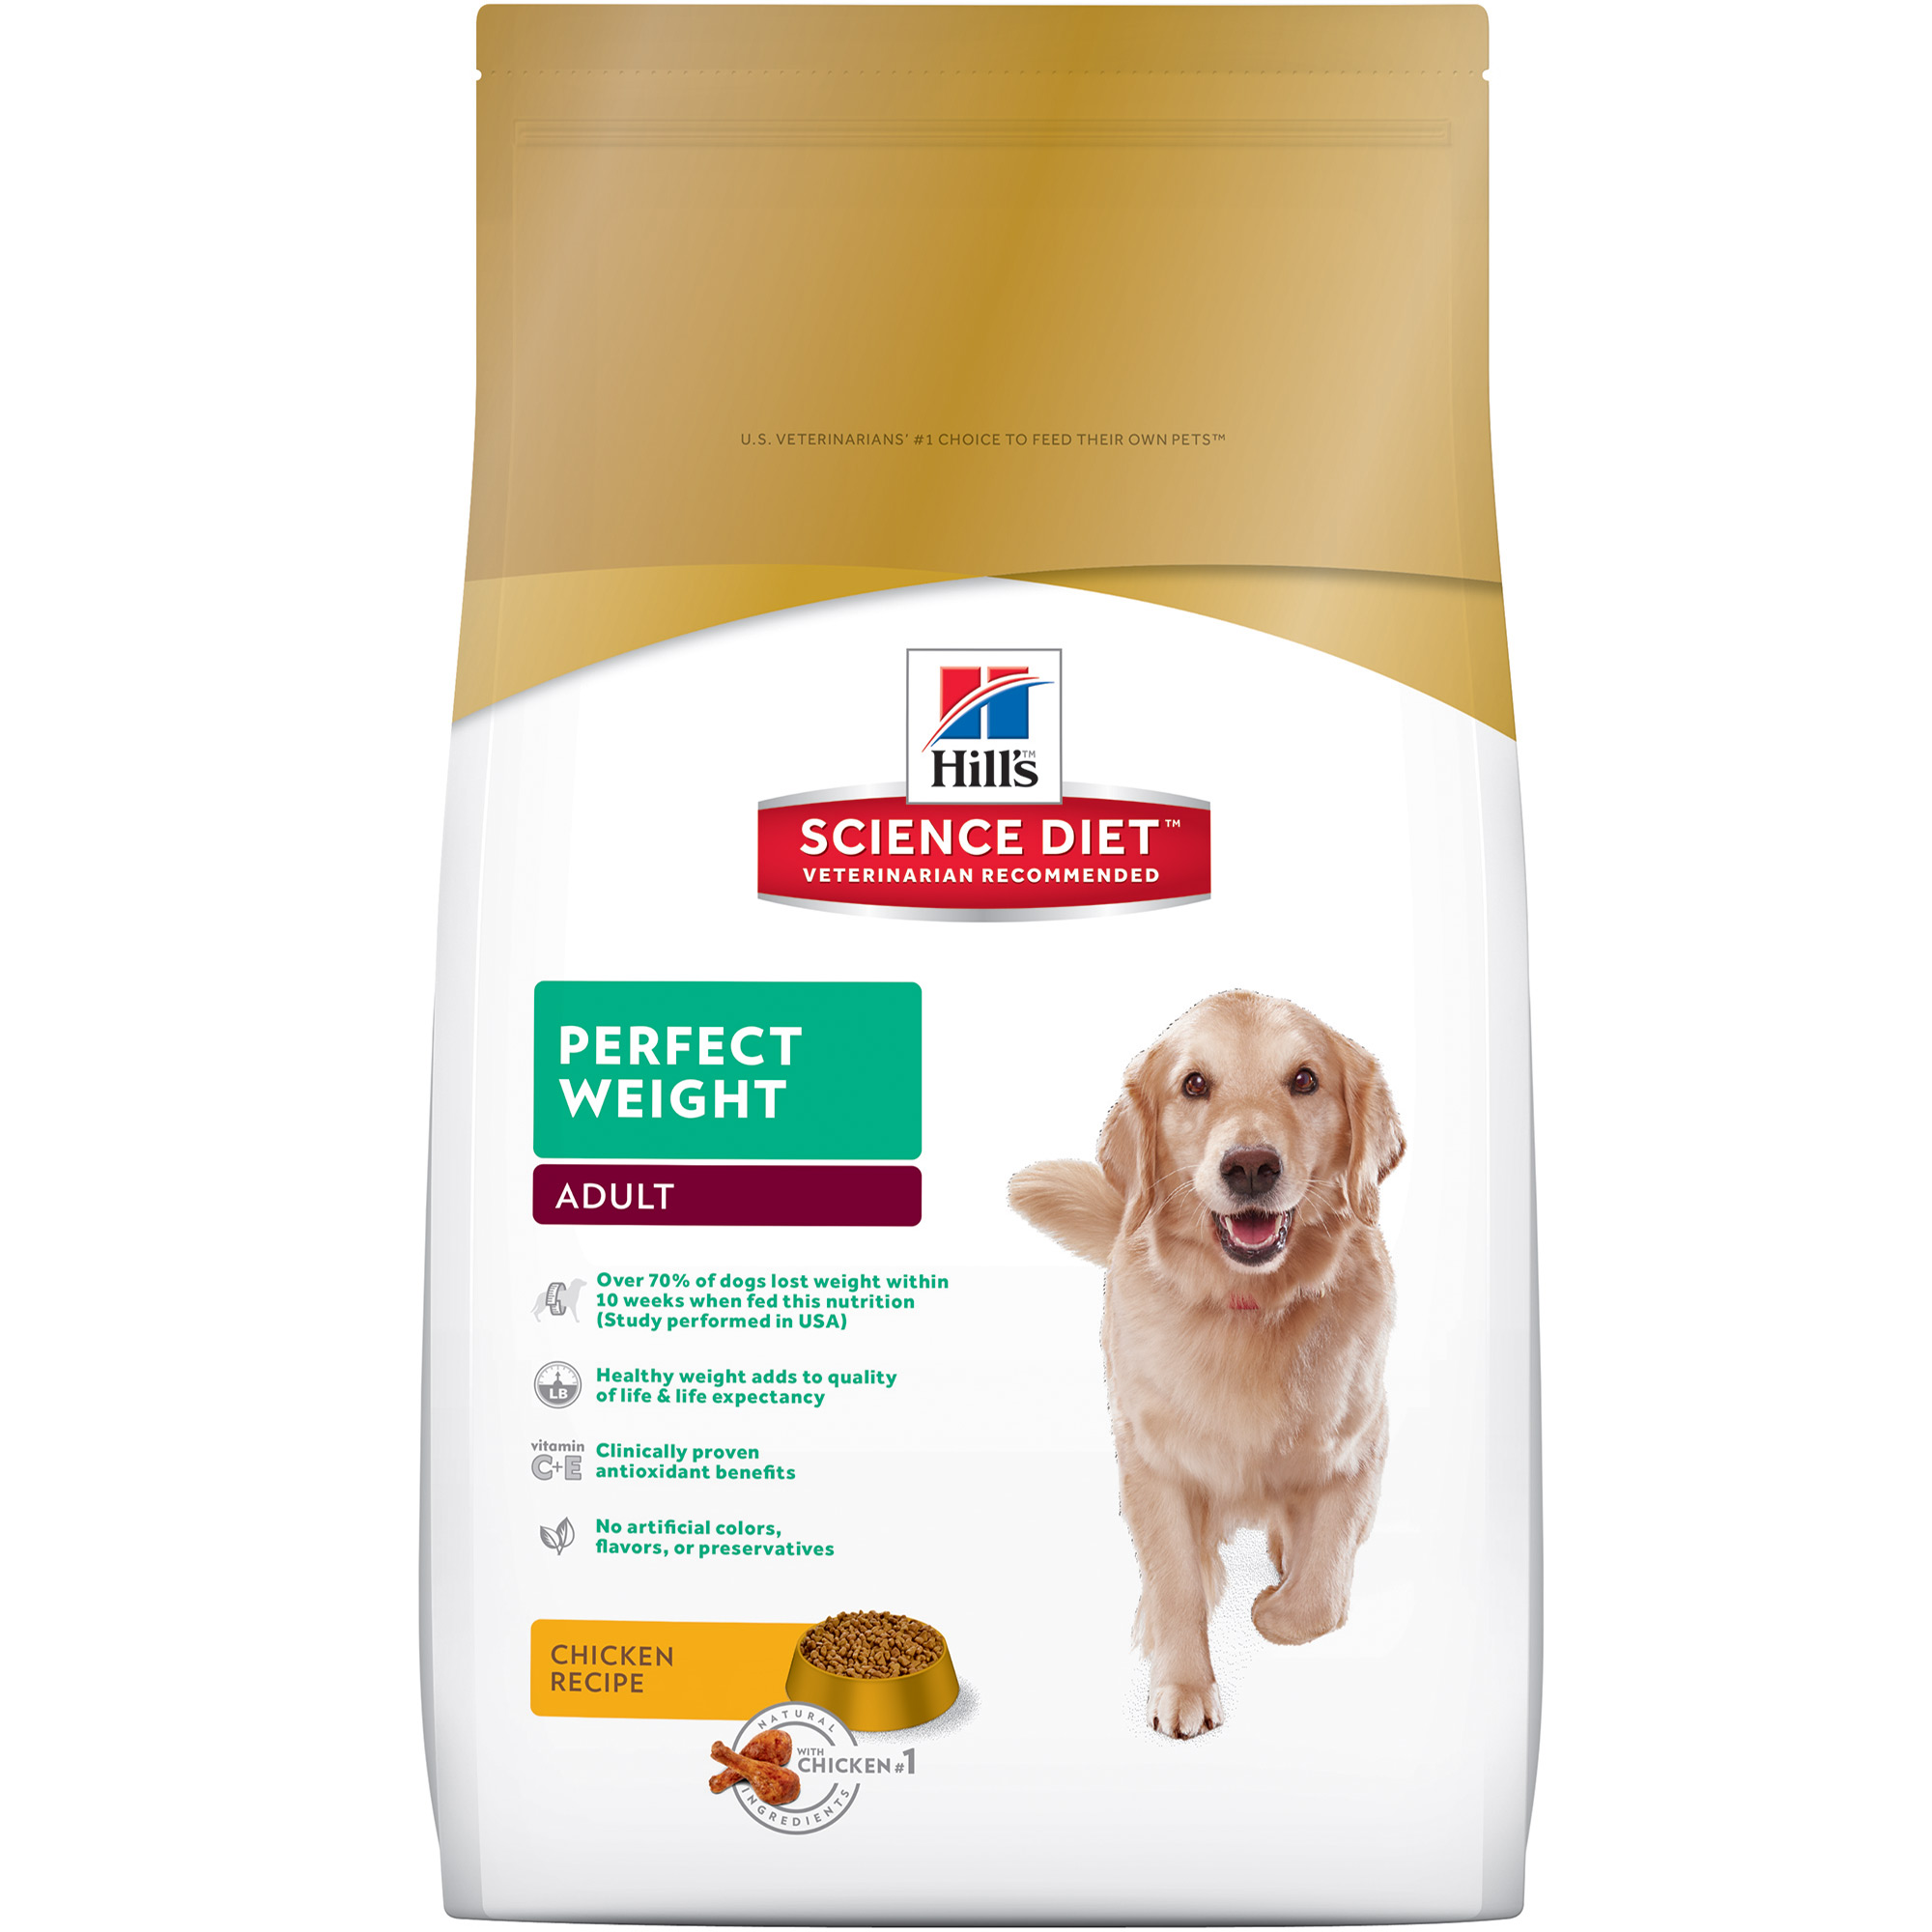 Hill's Science Diet Adult Perfect Weight Chicken Recipe Dry Dog Food, 28.5 lb bag by Hill's Pet Nutrition